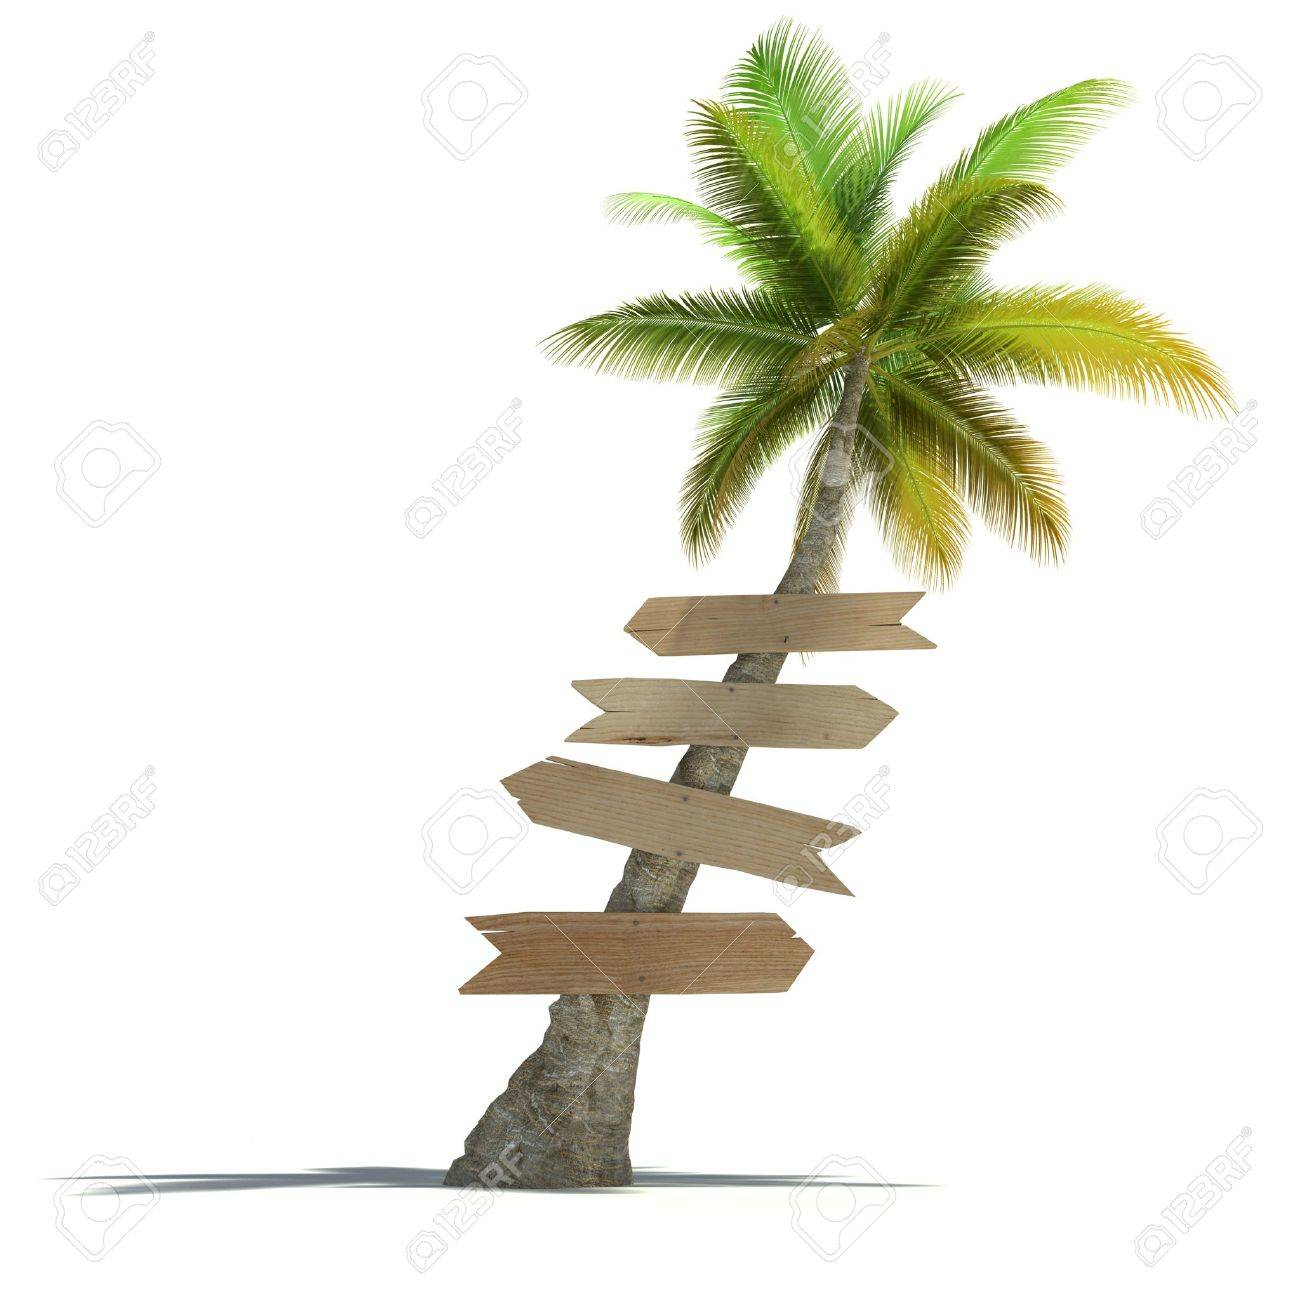 Palm tree with signboards attached to the trunk in a neutral background Stock Photo - 18128568